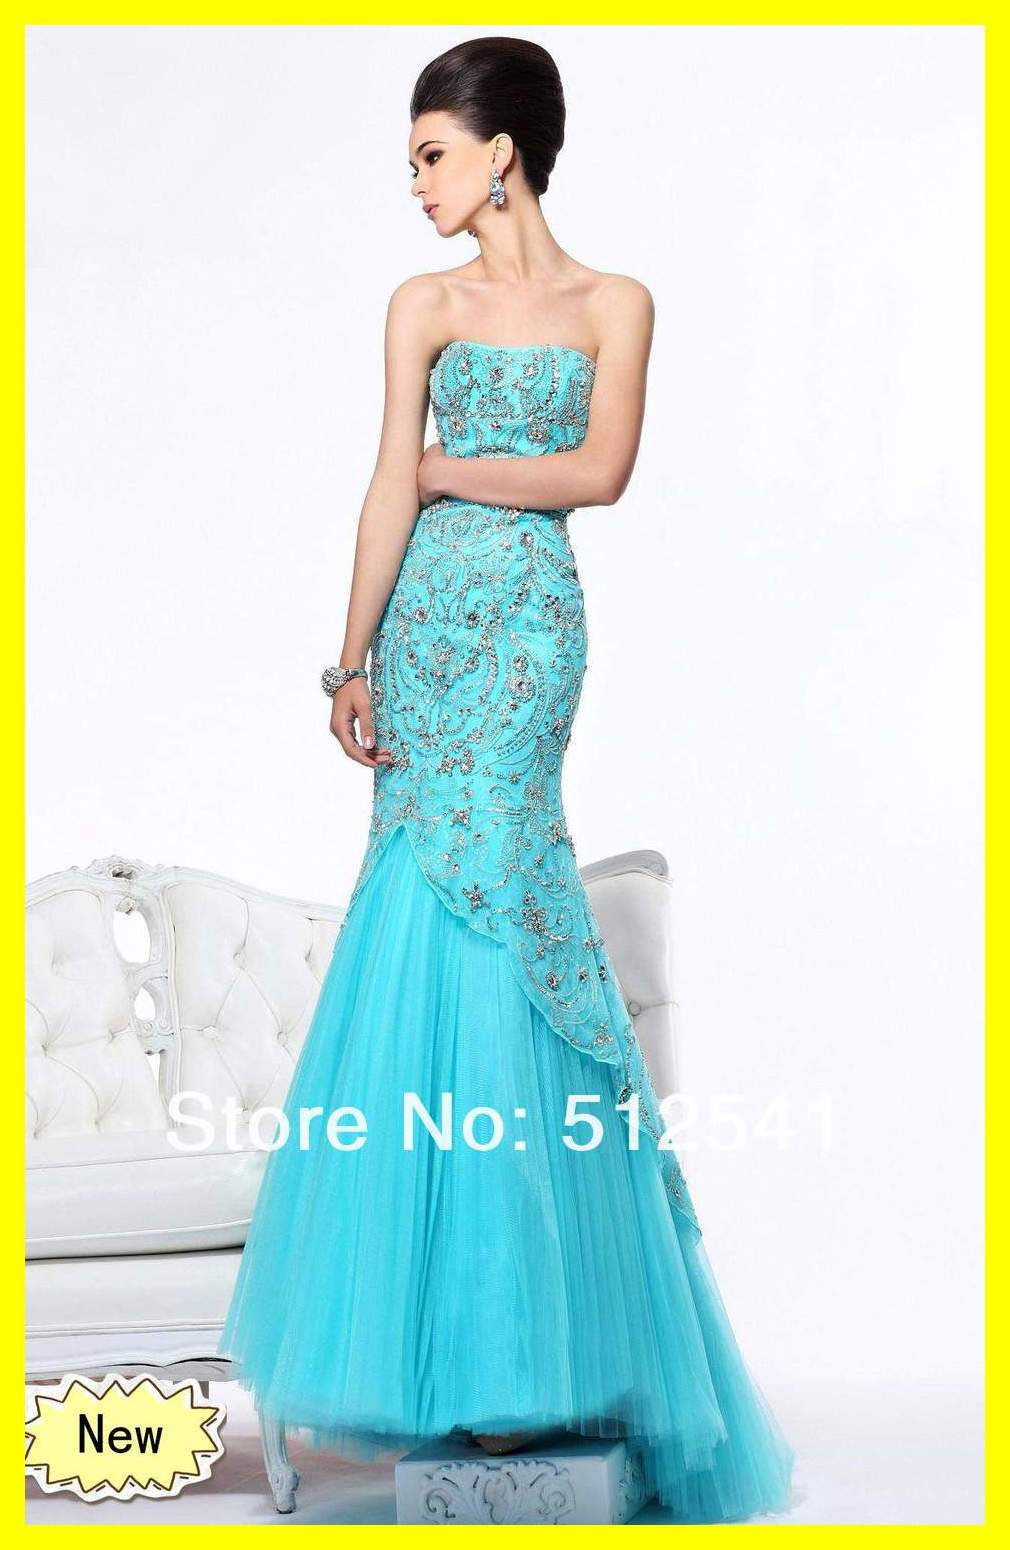 Short Prom Dresses Online Canada - Discount Evening Dresses